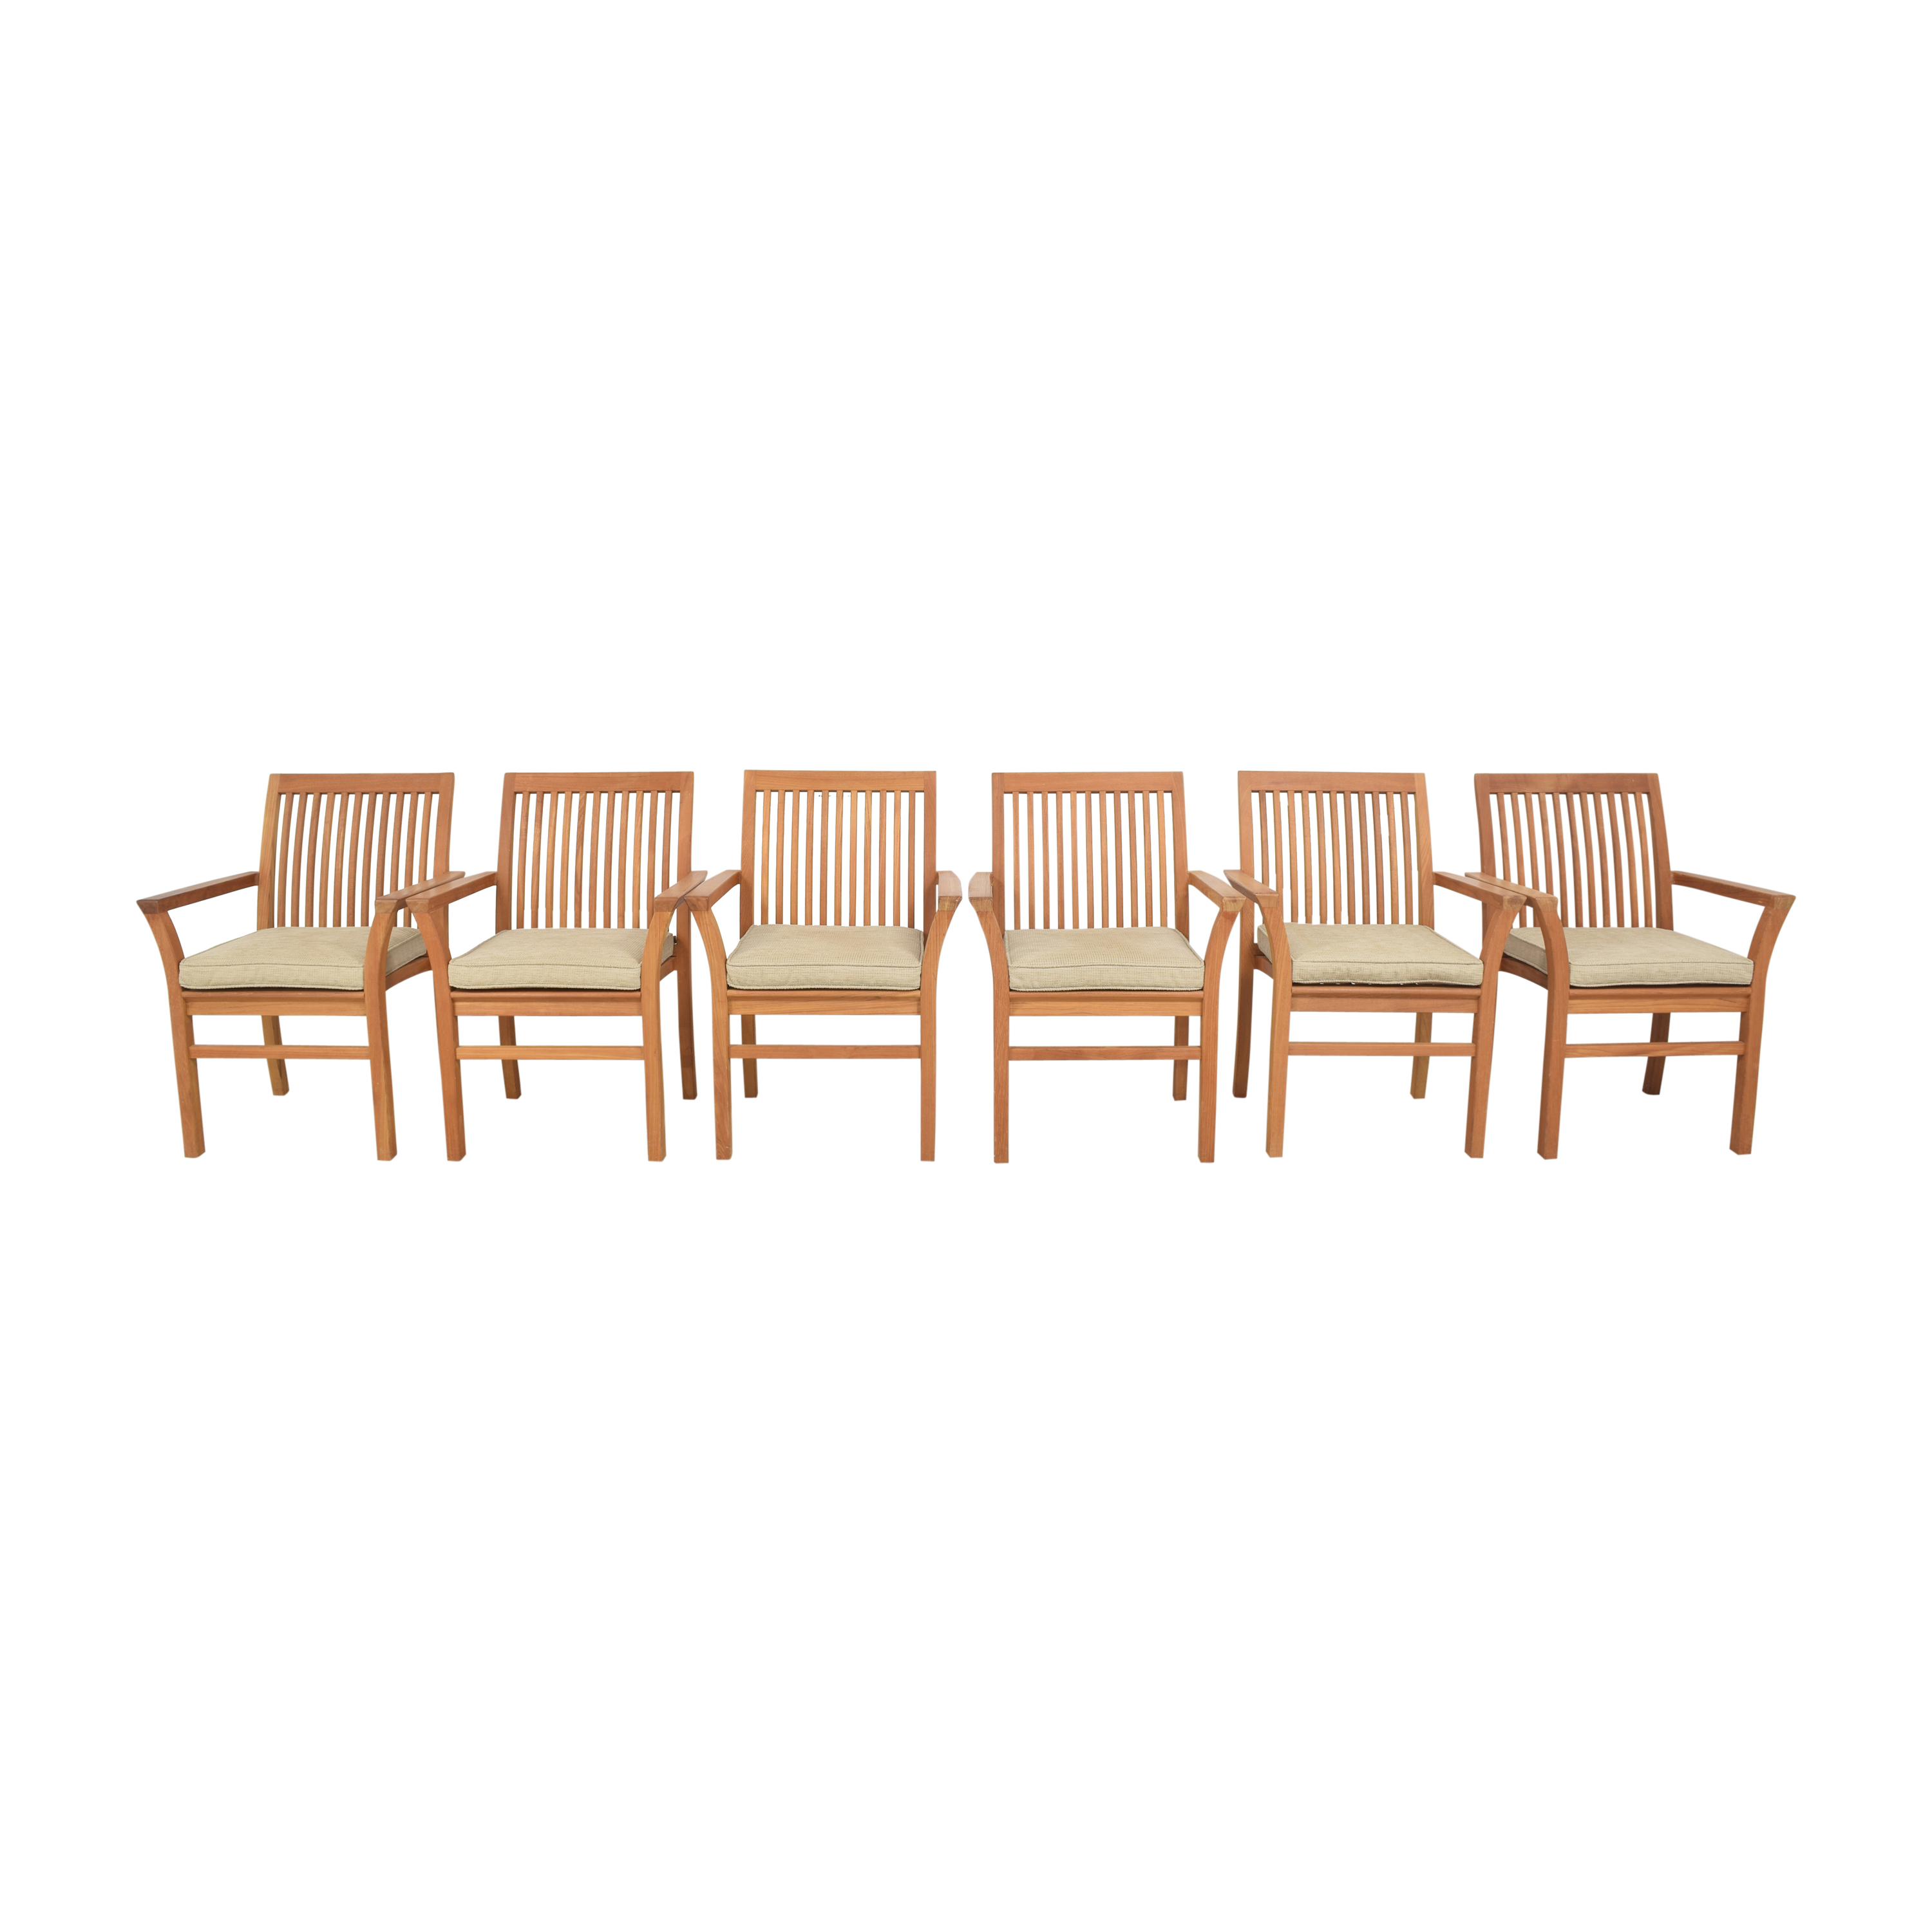 Henry Hall Designs Henry Hall Designs Stacking Armchairs second hand